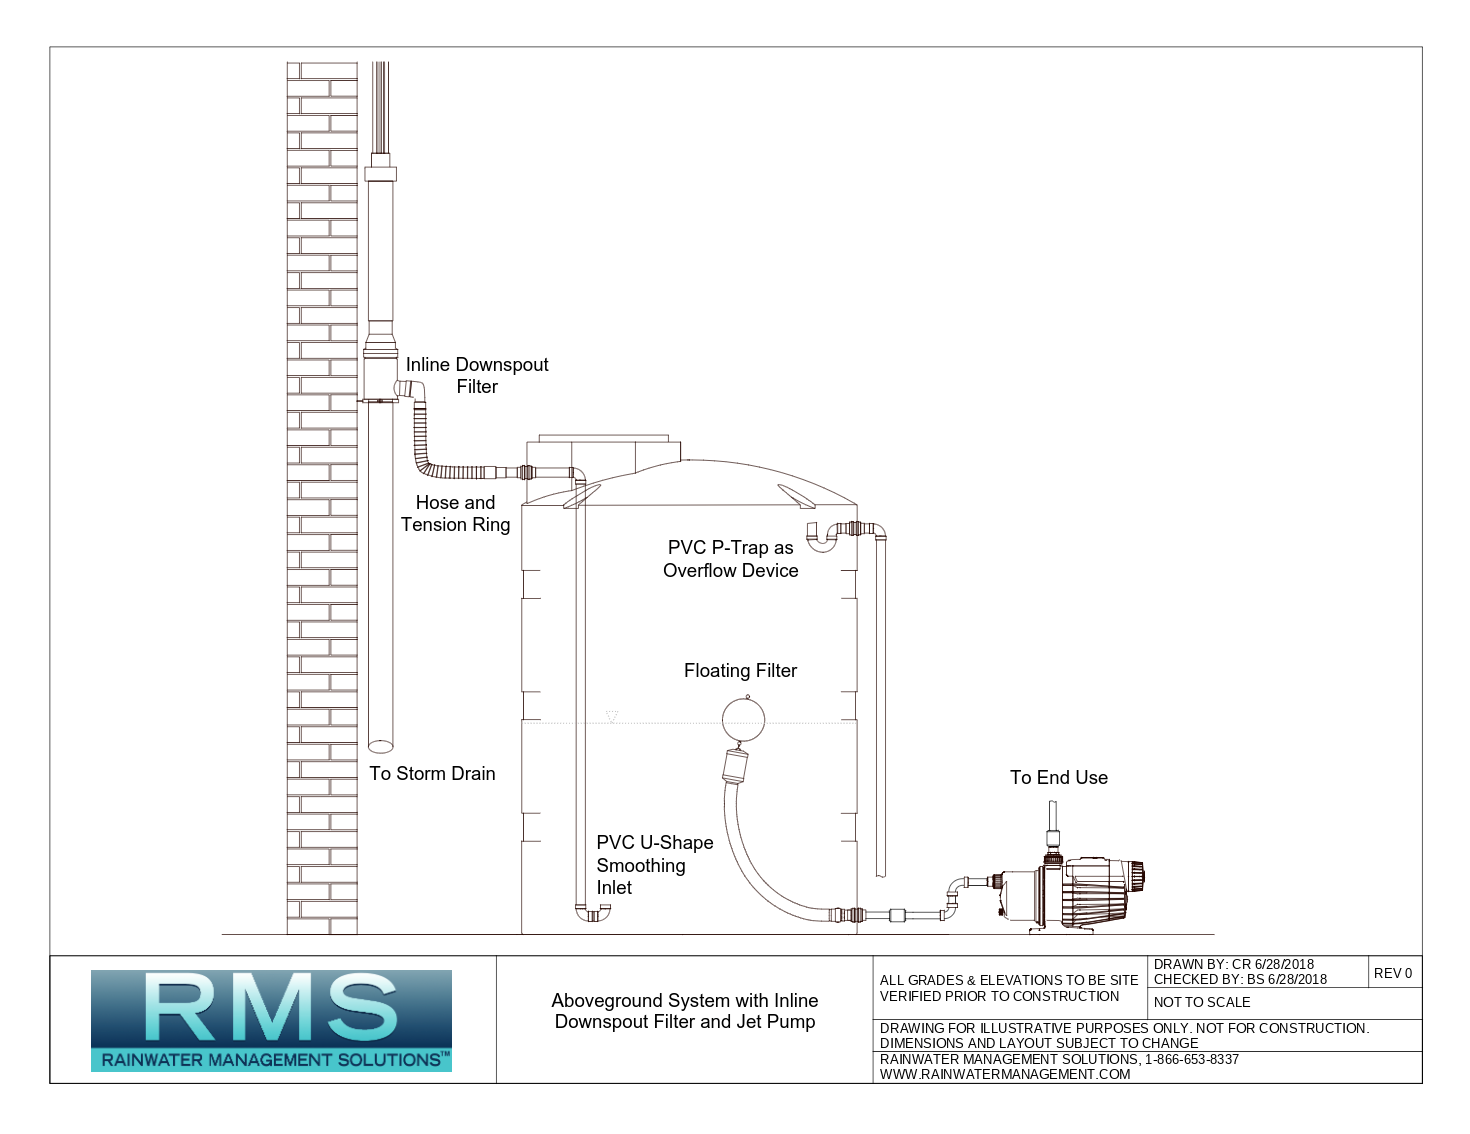 System Design & Consulting – Rainwater Management Solutions